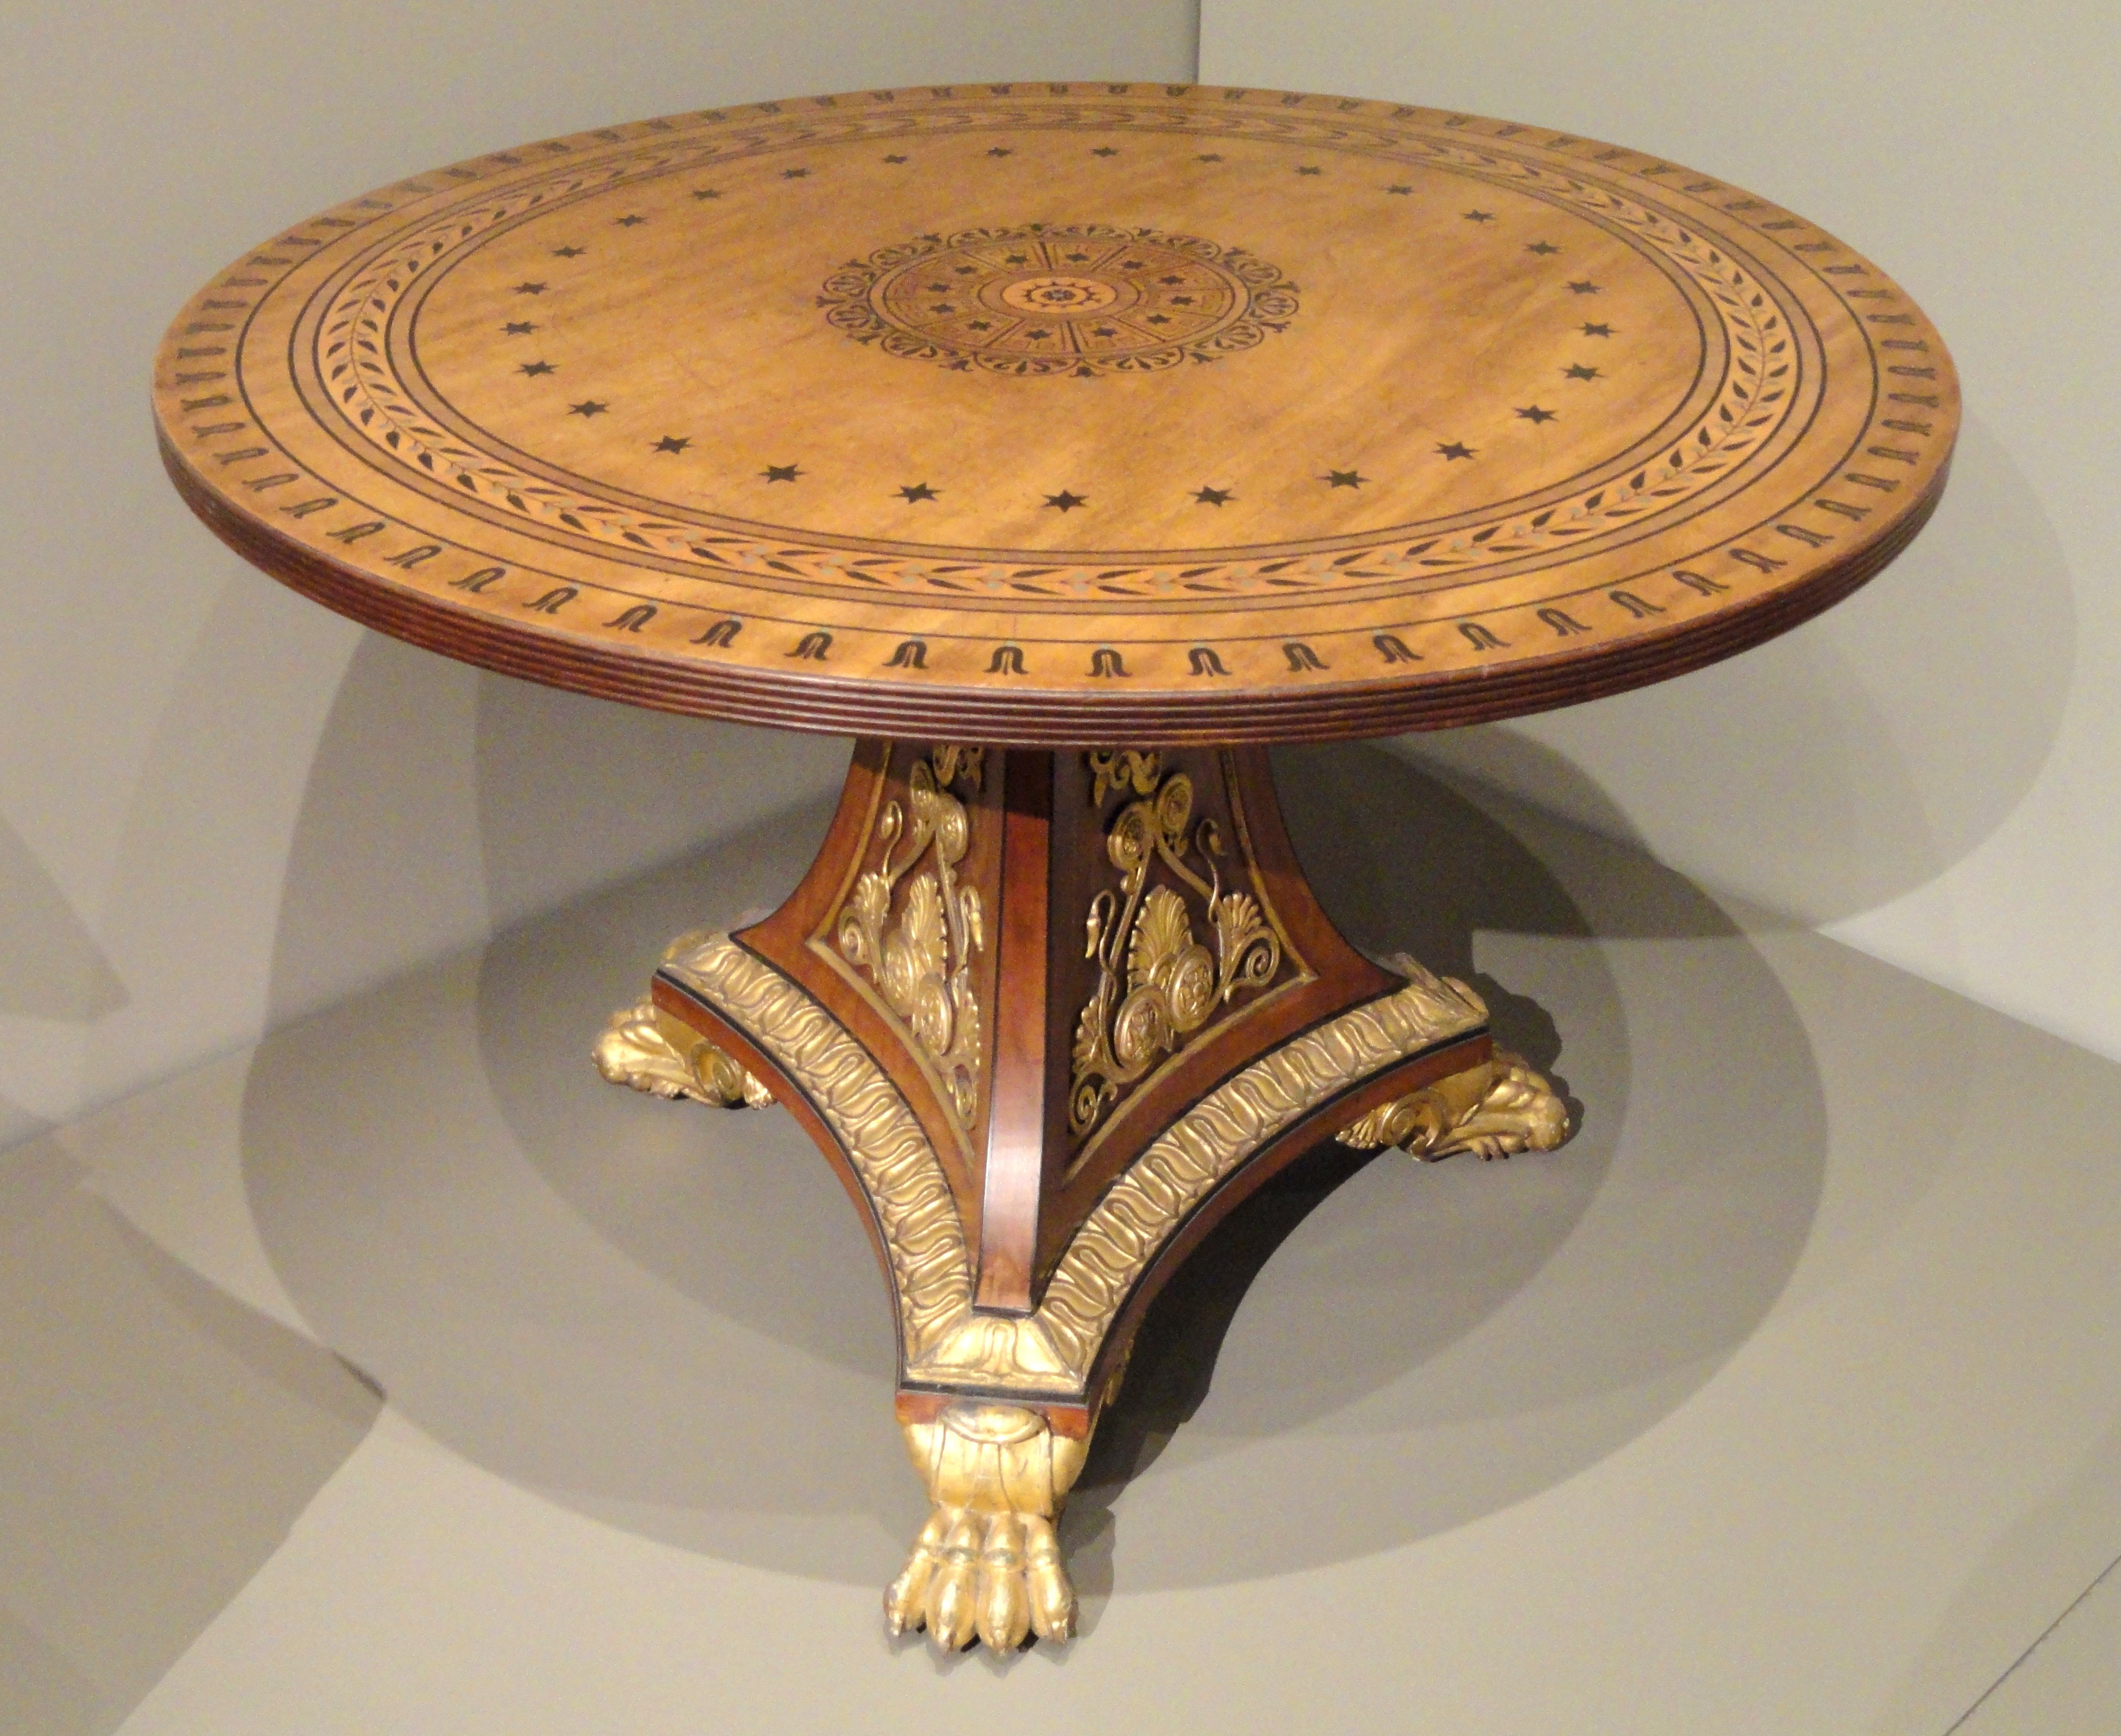 File:Pedestal Table, C. 1810, England, Mahogany With Ebony And Metal